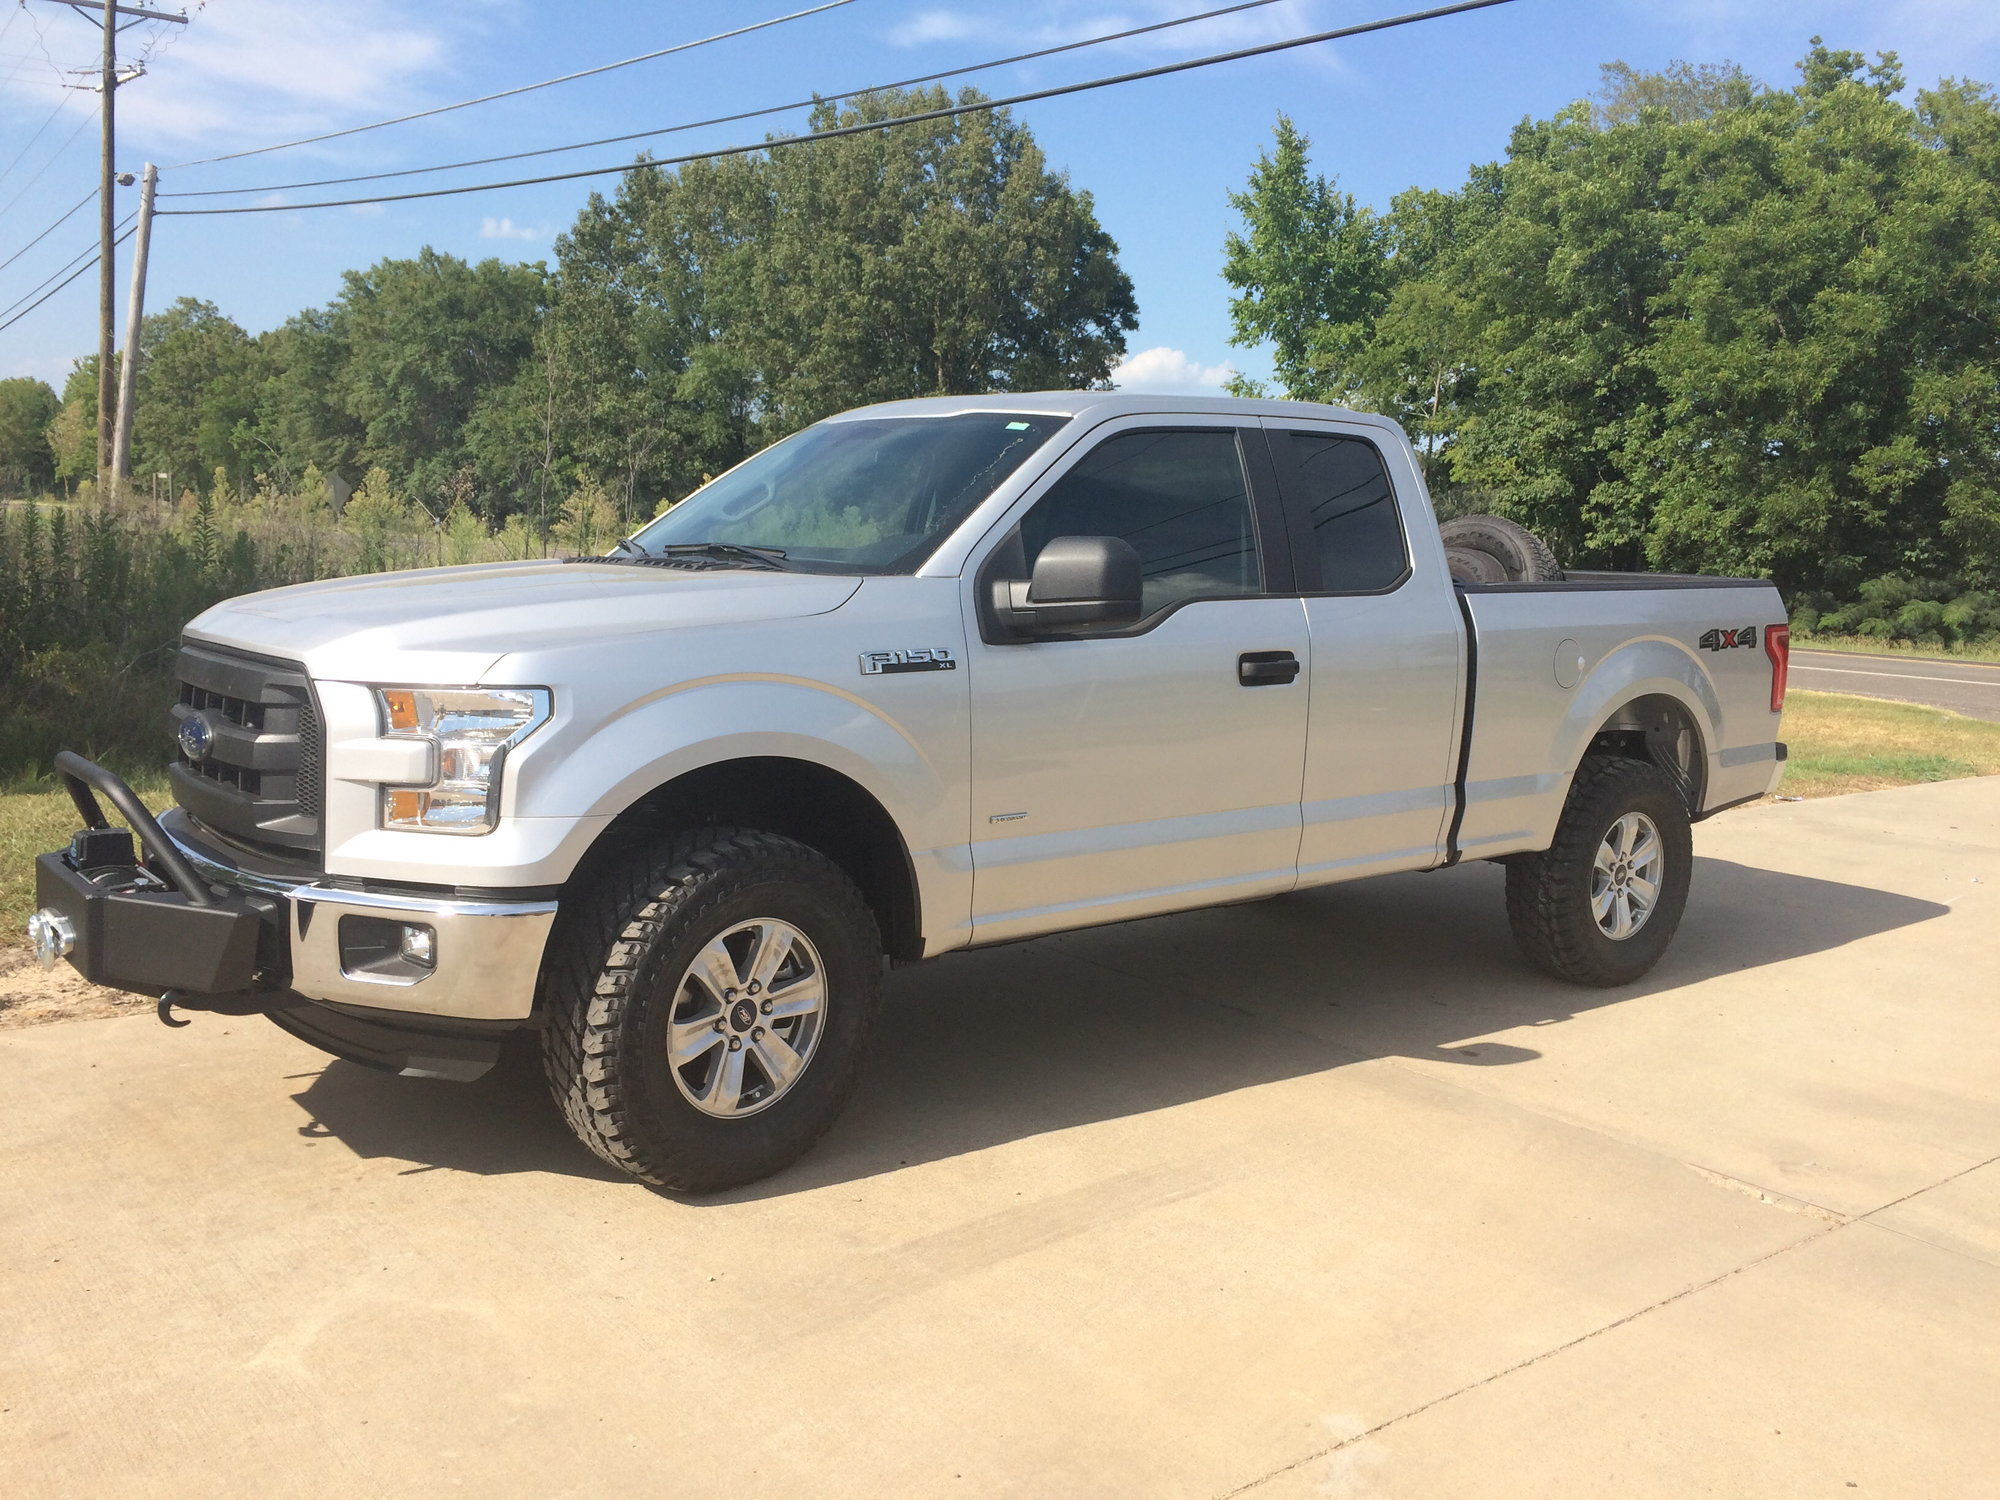 Hunting Truck Ford F150 Forum Community Of Ford Truck Fans